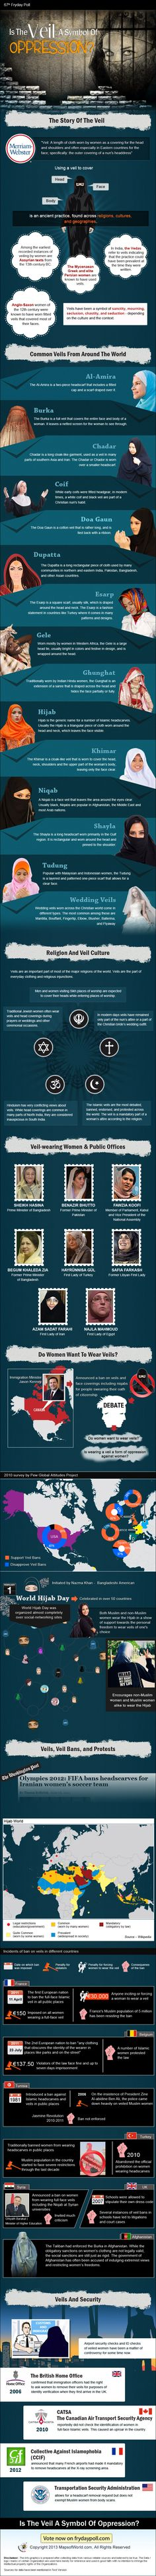 Find In-depth Review And Infographic About Veils, Hijab, Niqab, Burka, Veil Culture, Veil Bans, Hijab Bans, France Veil Bans, Different Kinds of Veils, Religion And Veil Culture, Veiled Women in Public Offices, Stats And Facts